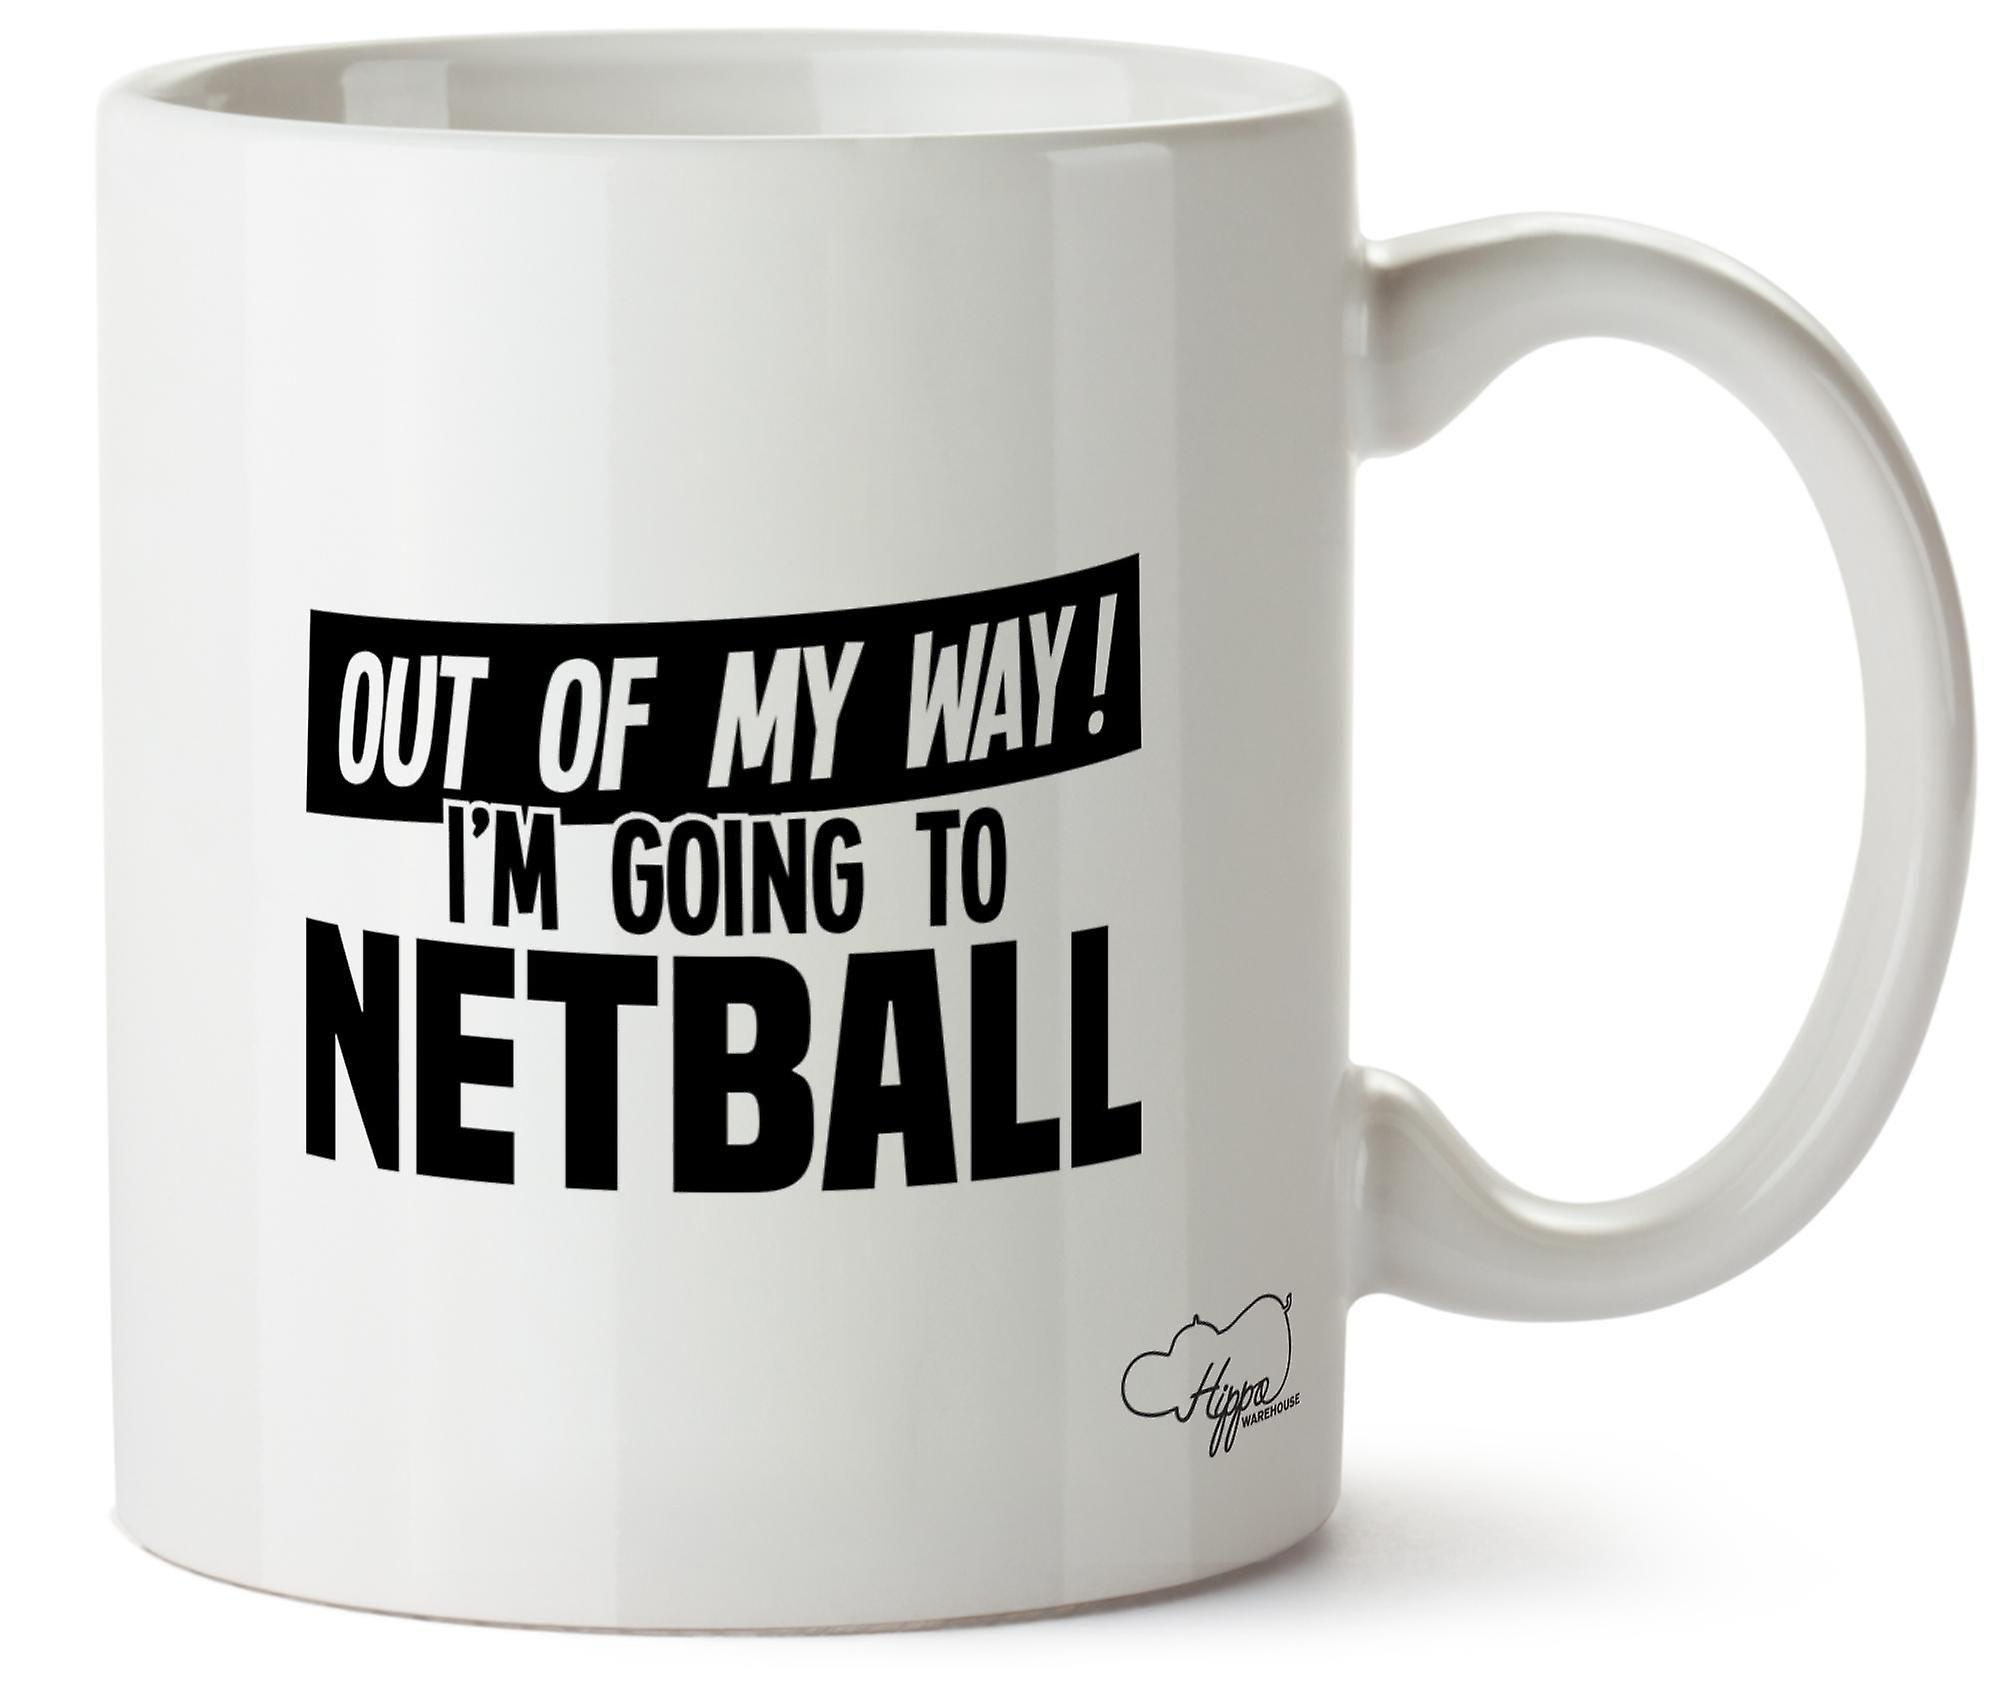 Hippowarehouse Out Of My Way I'm Going To Netball Printed Mug Cup Ceramic 10oz